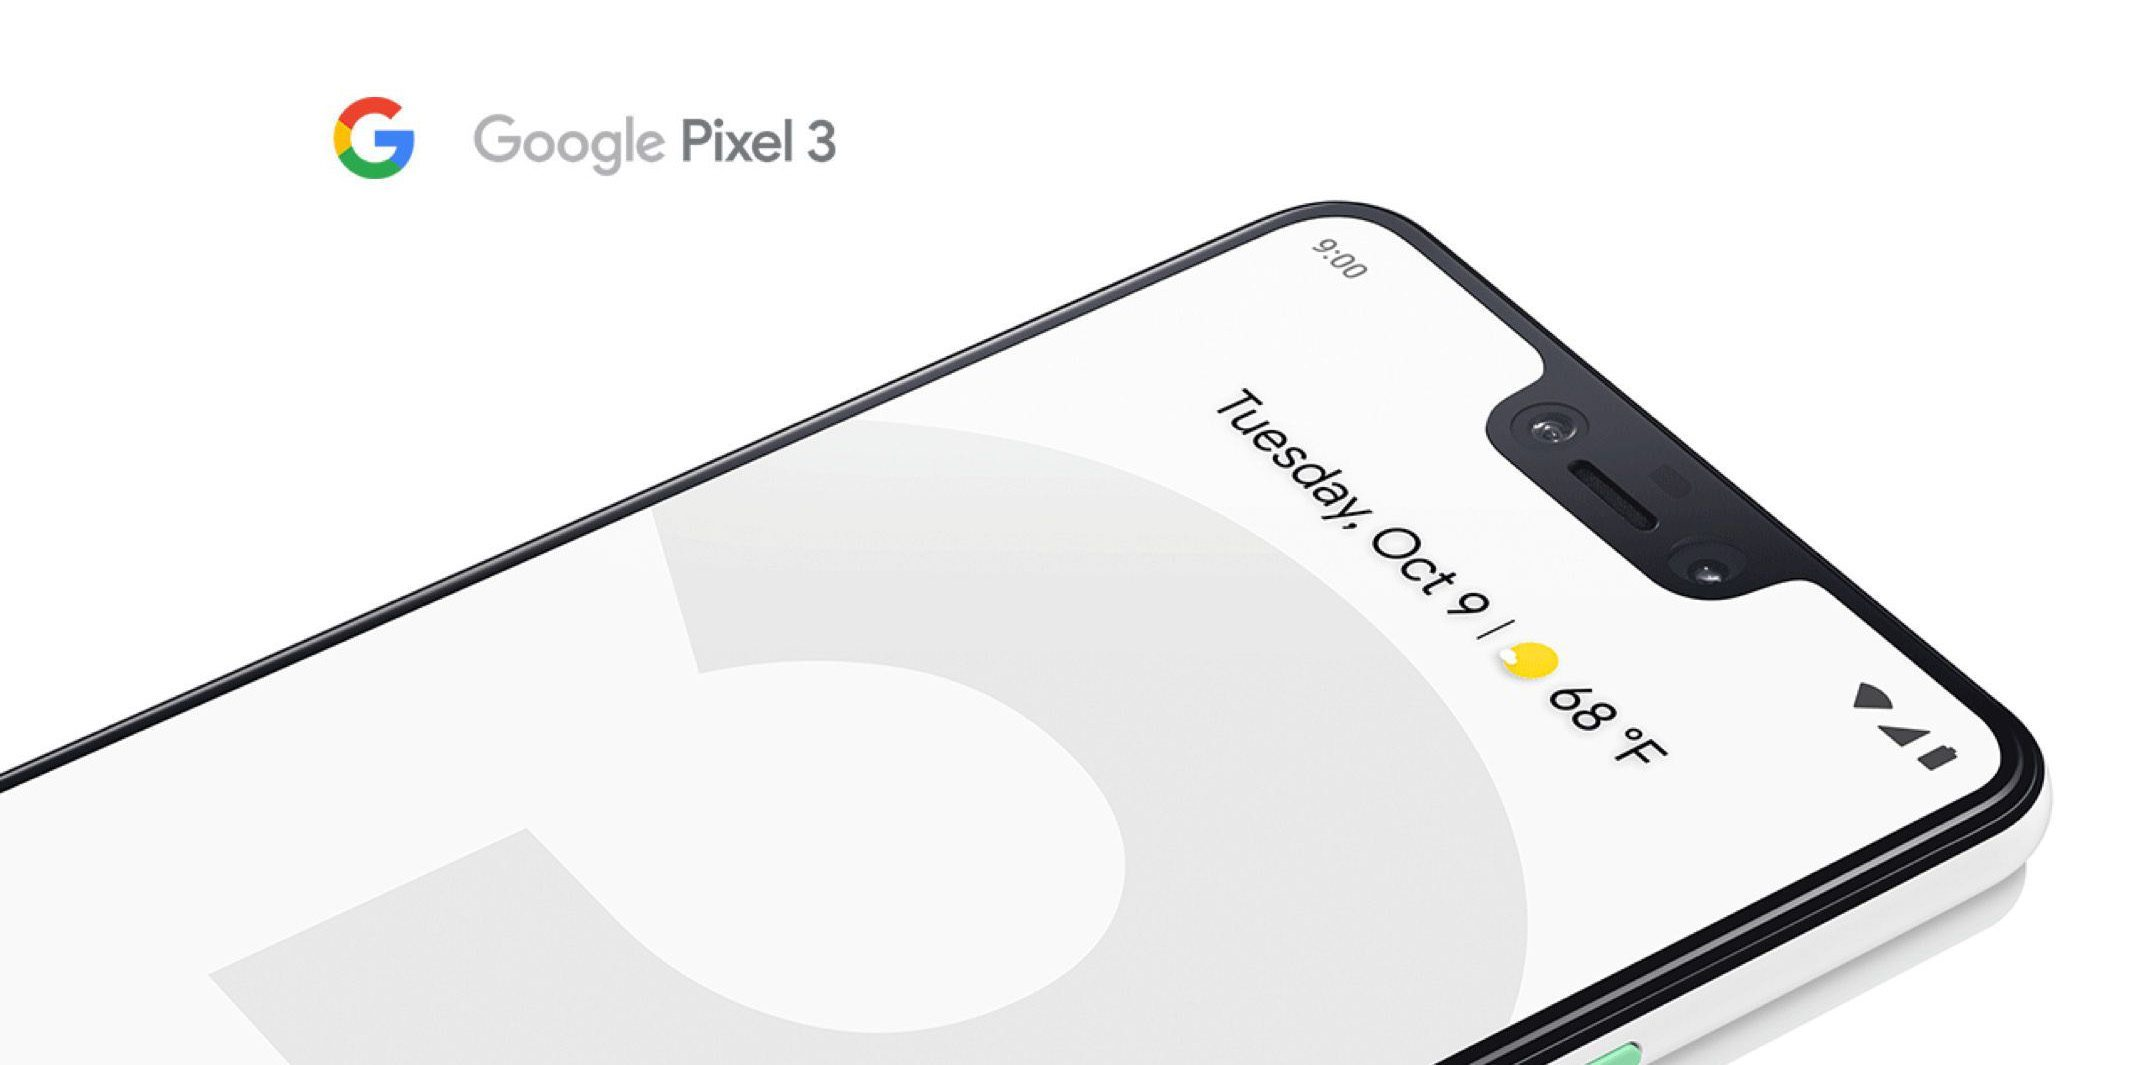 Google Pixel 3 et Pixel 3 XL officialisés : des machines à selfie intelligentes